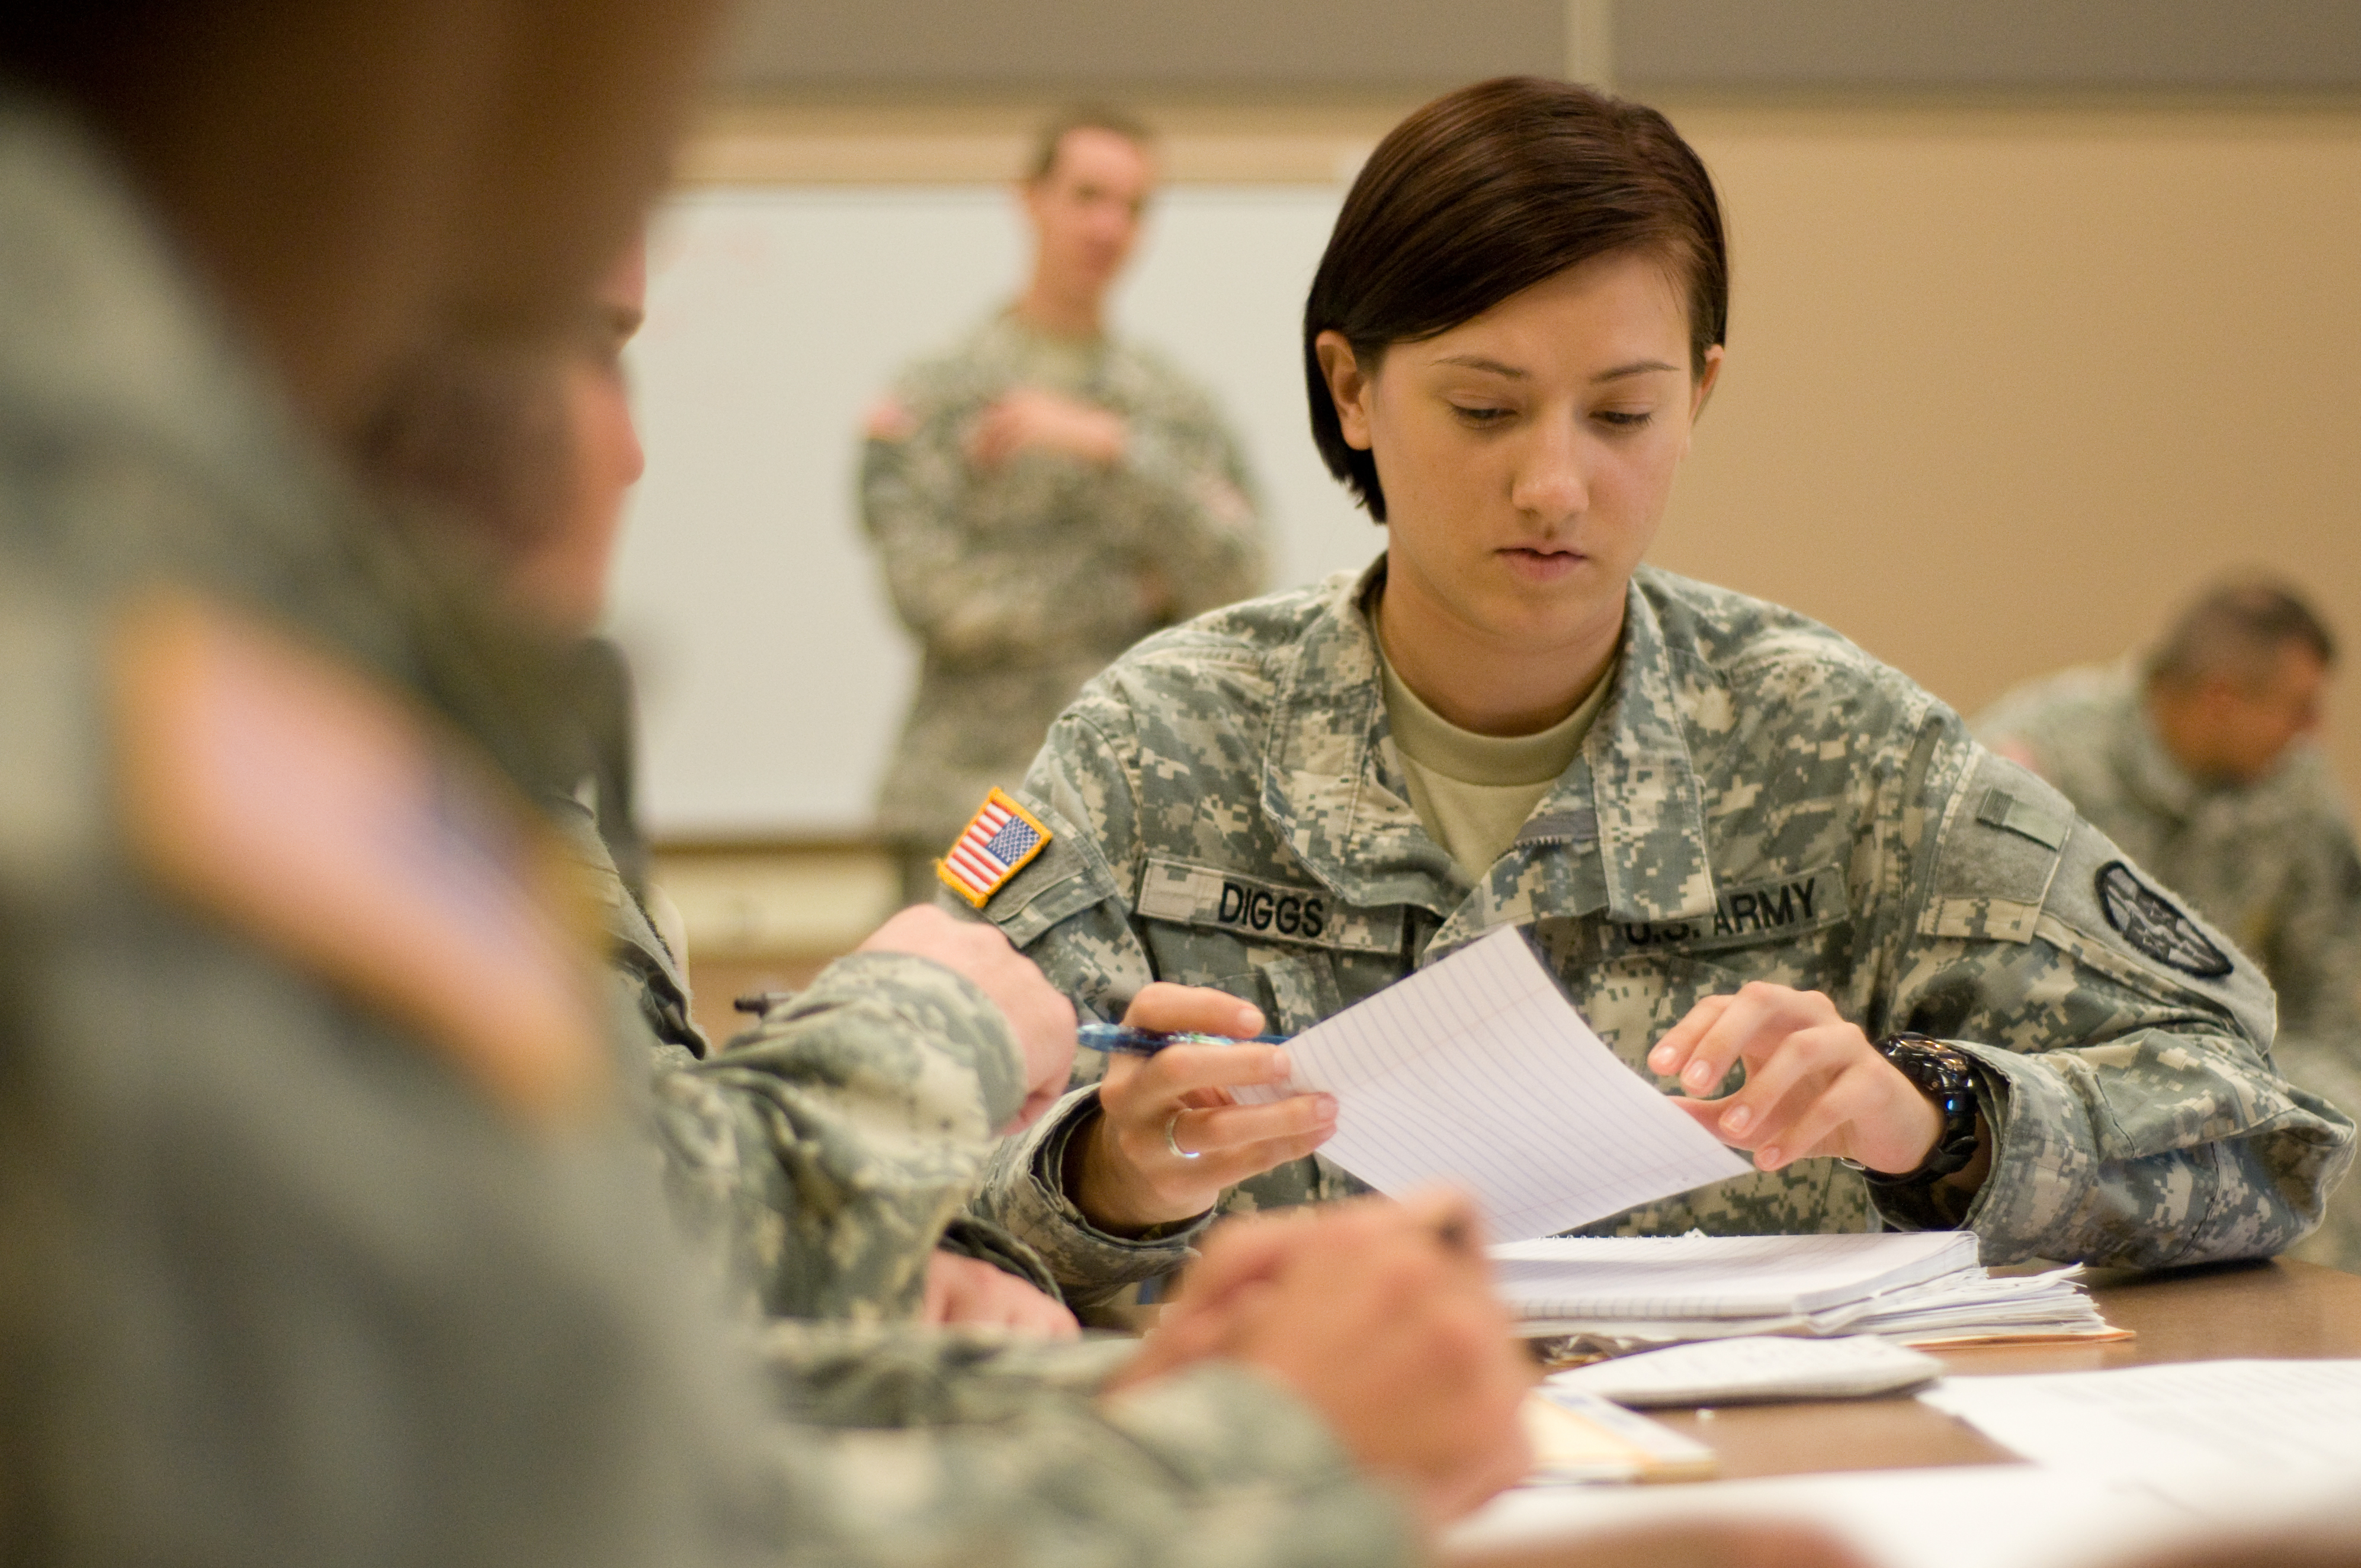 The 7 enlisted jobs with awesome entry-level salaries - We